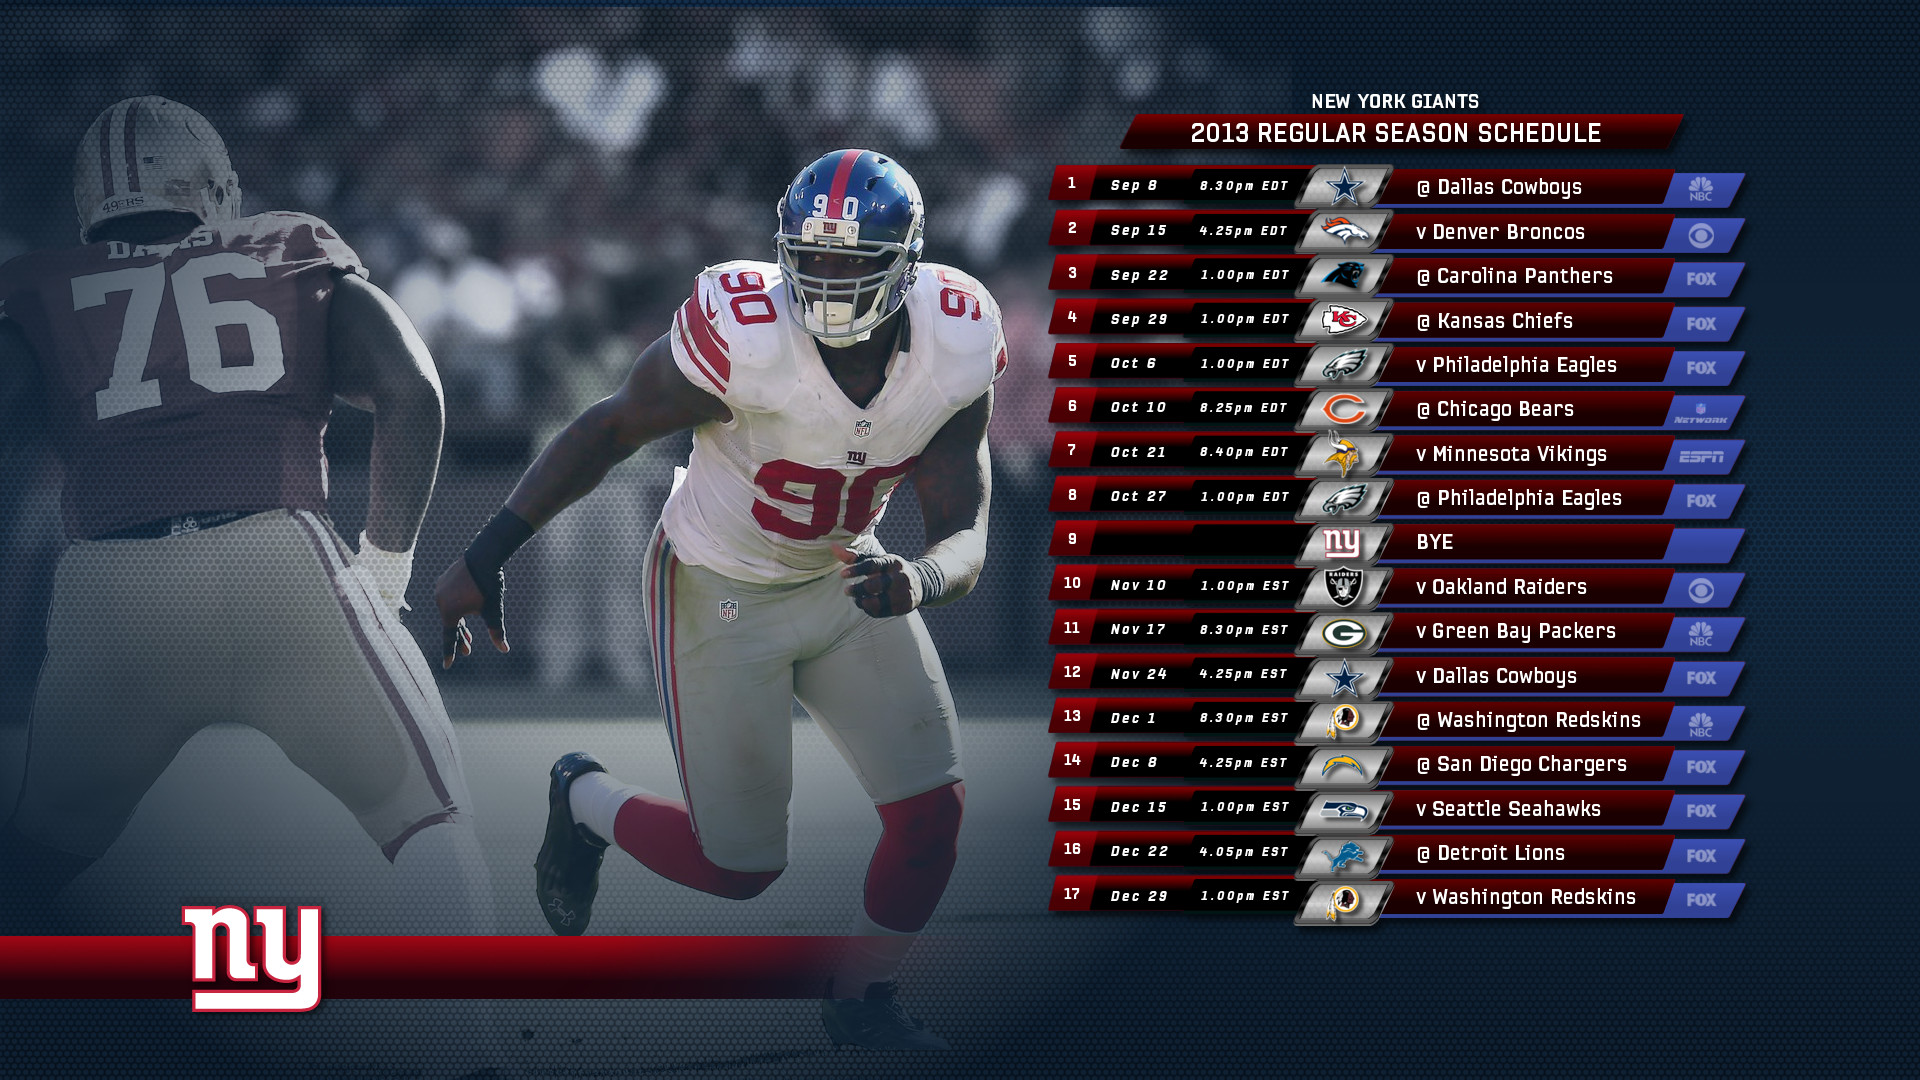 1920x1080 2013 Giants Schedule Wallpapers [Archive] - New York Giants Fan Forum